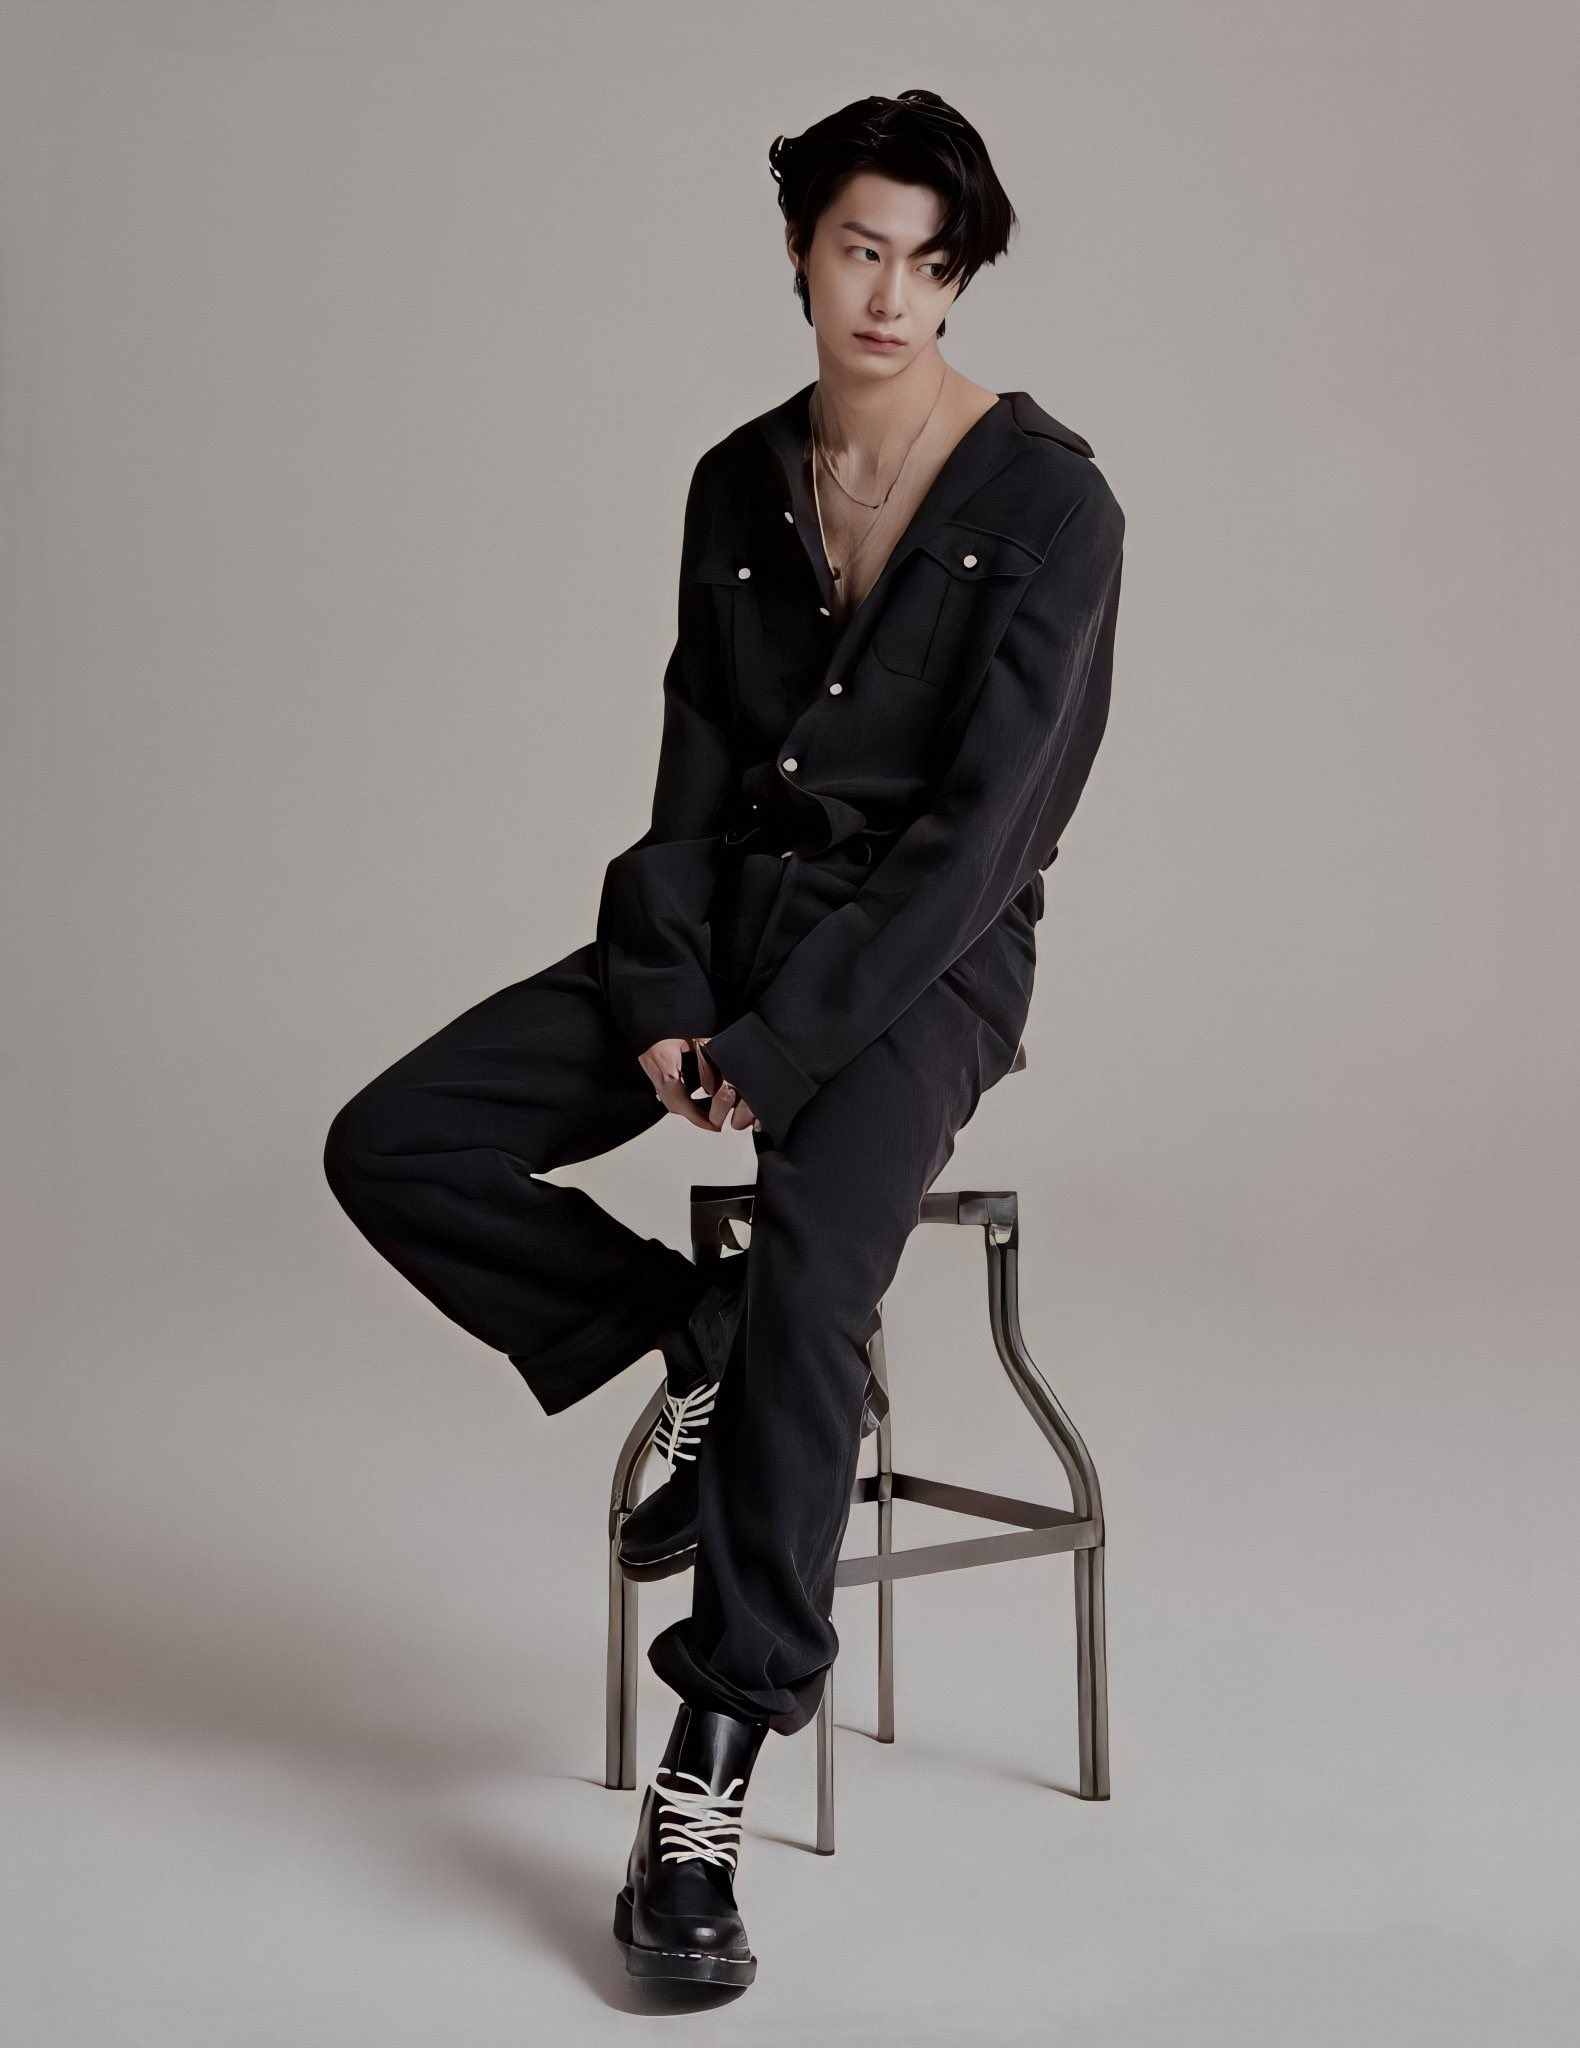 """fantasia x ✨ on Twitter: """"hyungwon in photoshoots is like a ..."""